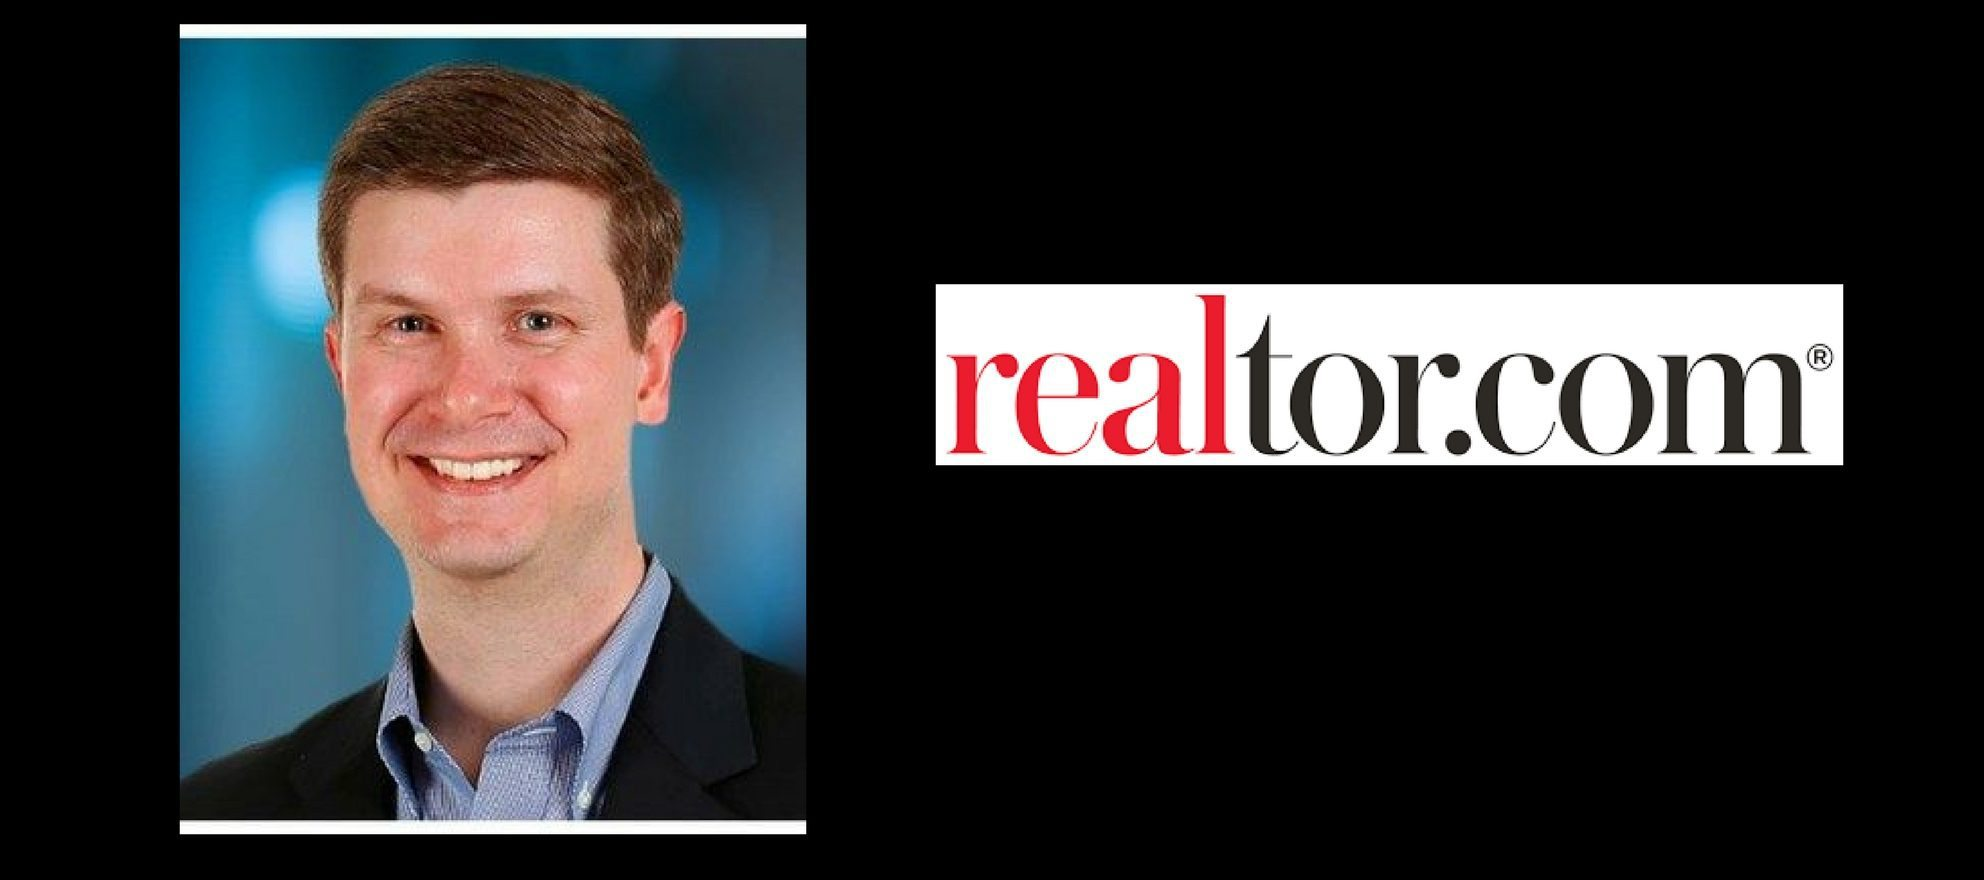 Economist Jonathan Smoke departs from realtor.com, housing industry